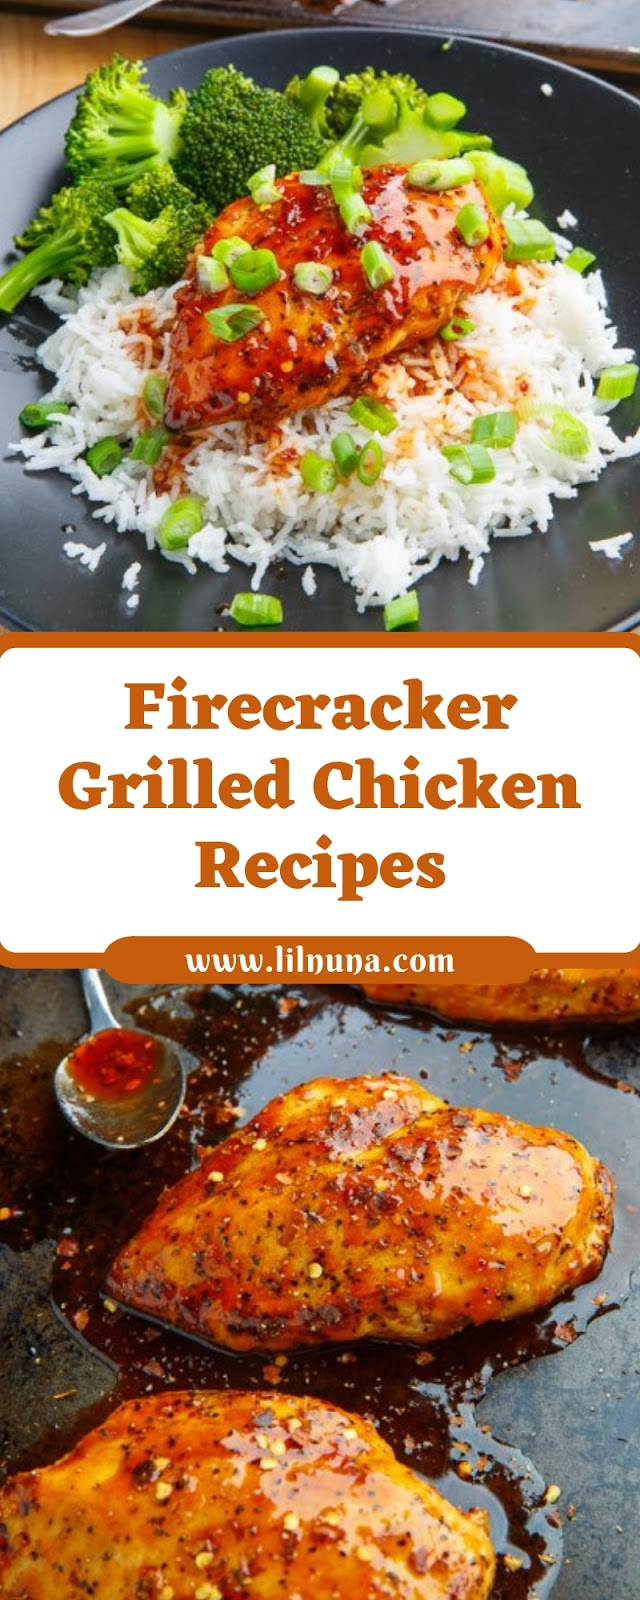 Firecracker Grilled Chicken Recipes